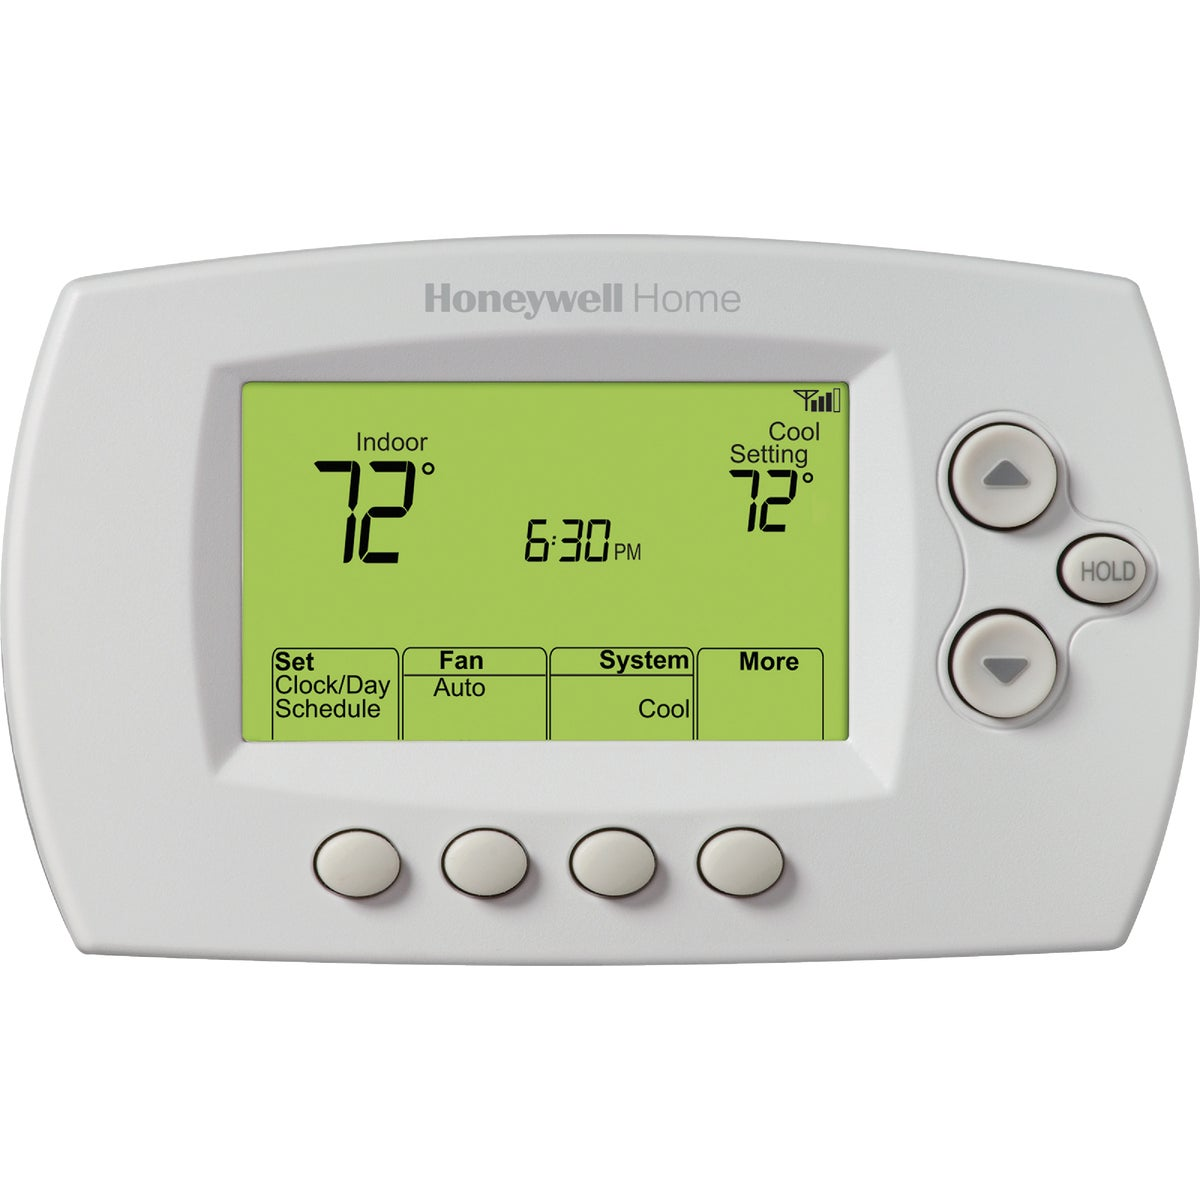 7 DAY WIFI THERMOSTAT - RTH6580WF by Honeywell Internatl